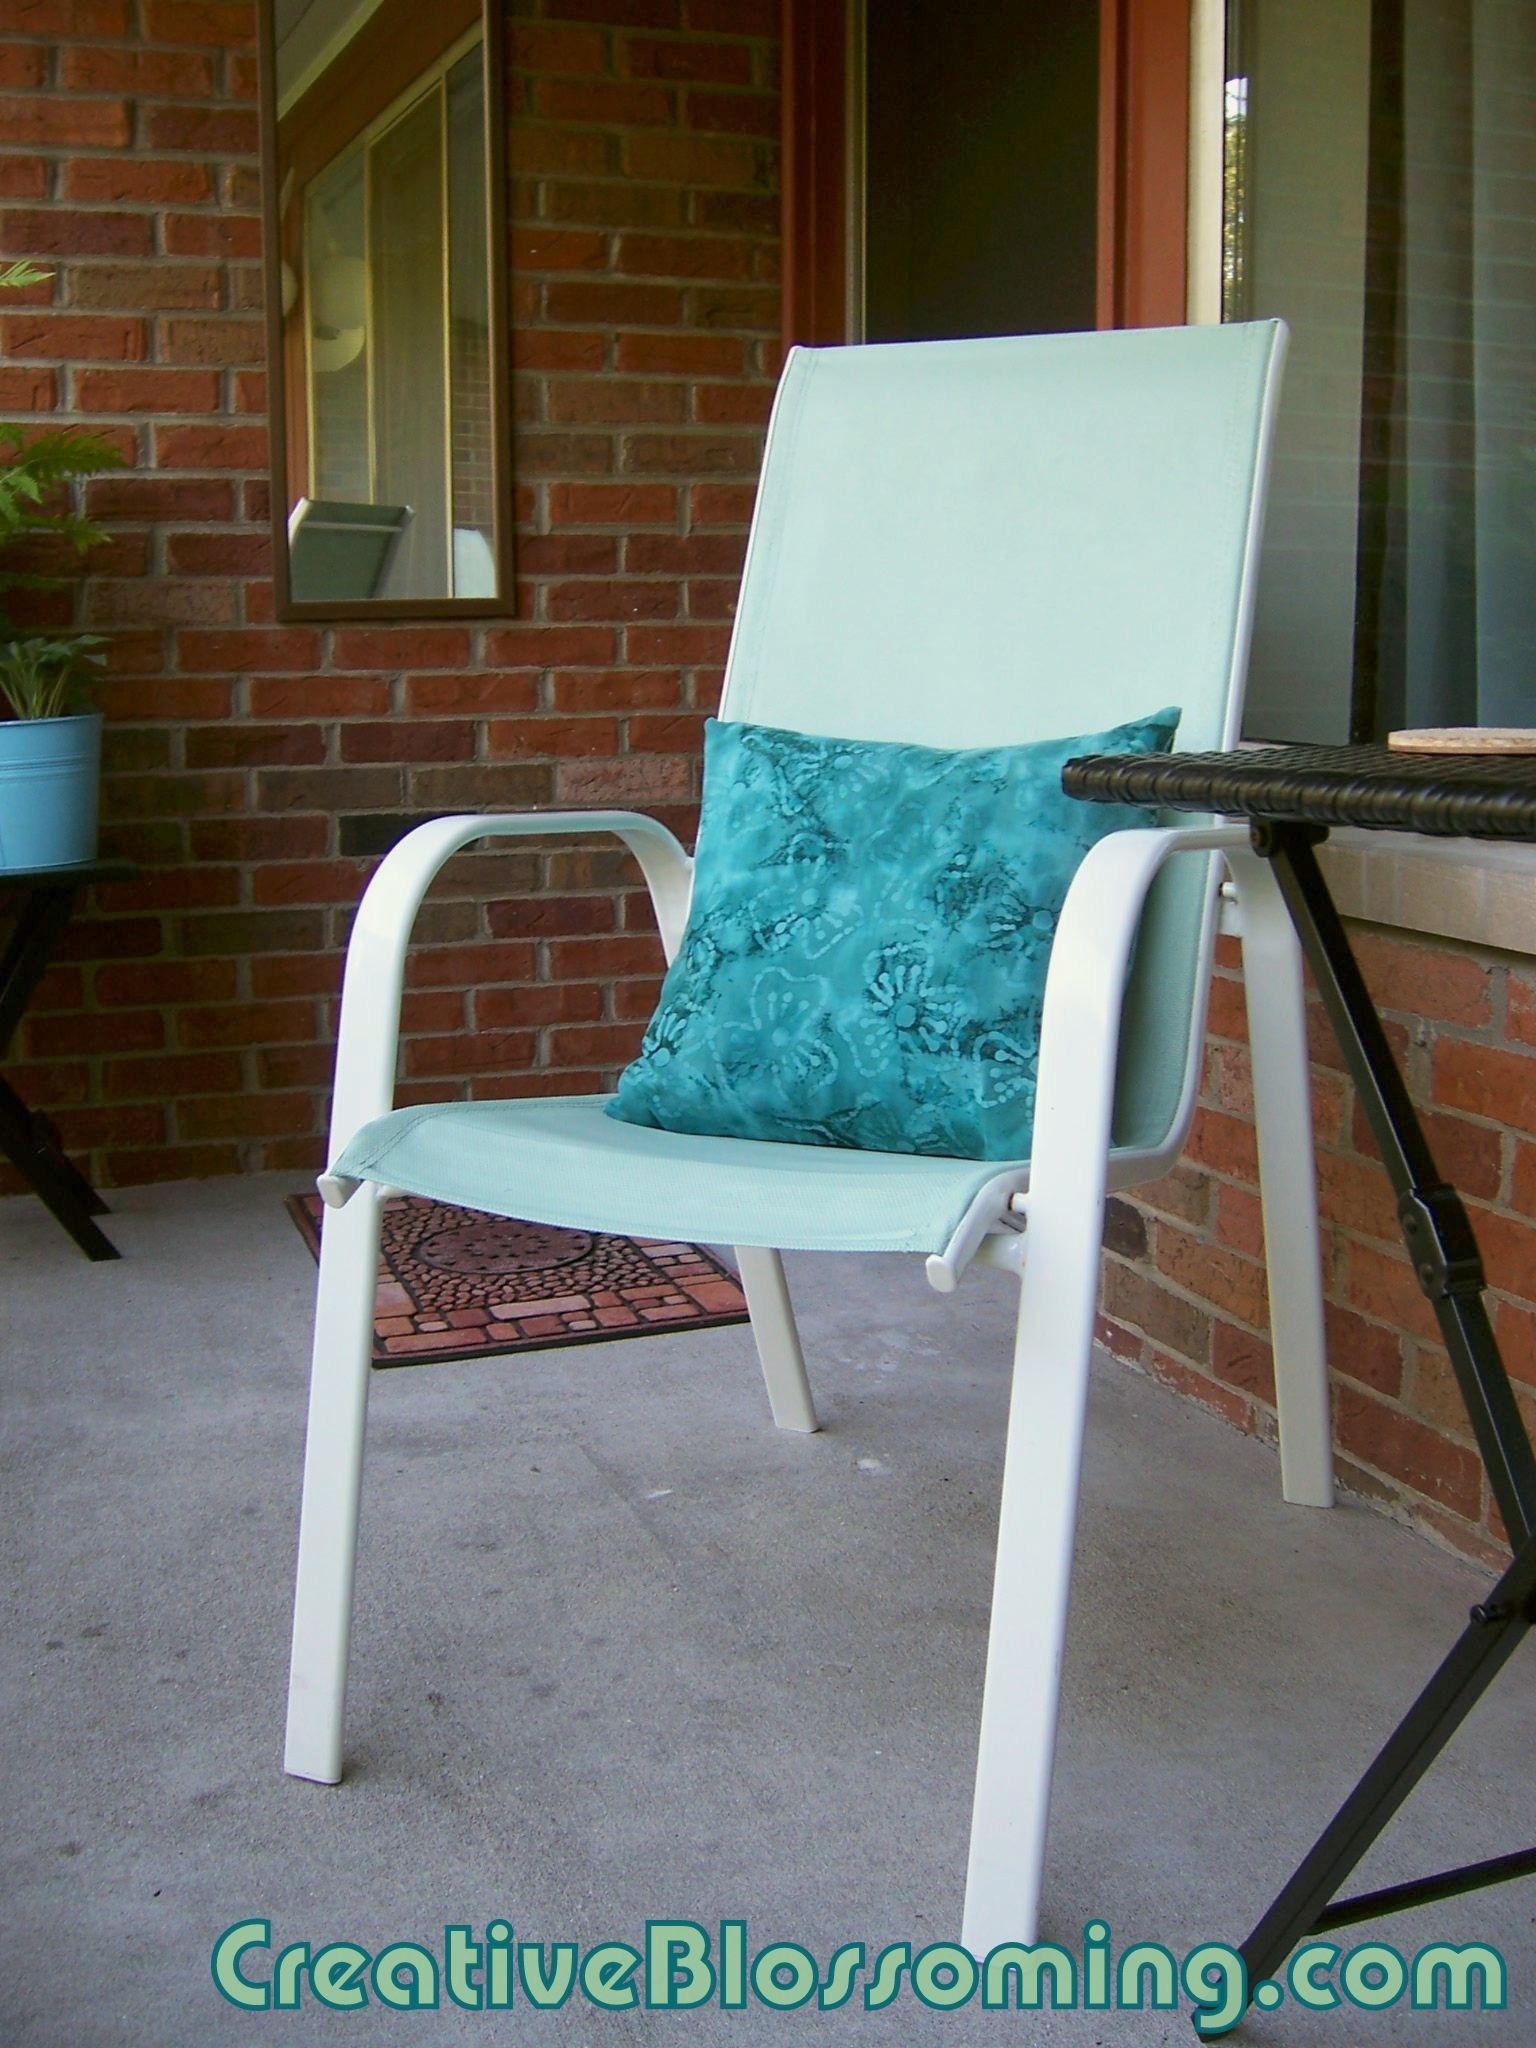 Painted patio chair. She used latex indoor paint on mesh